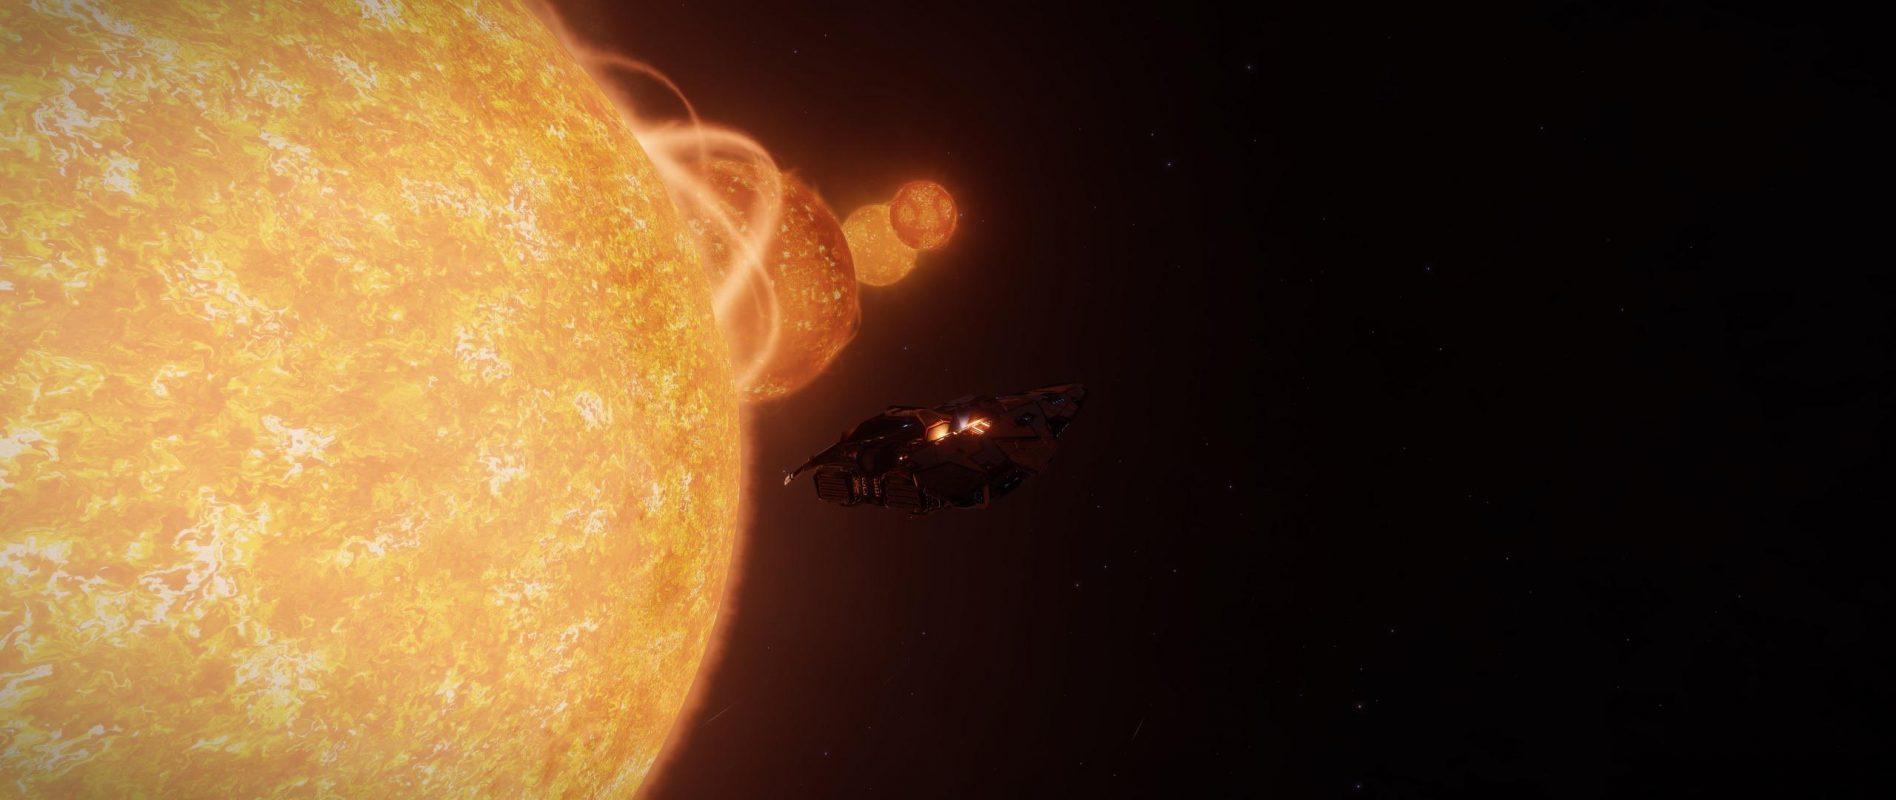 A system with 4 suns